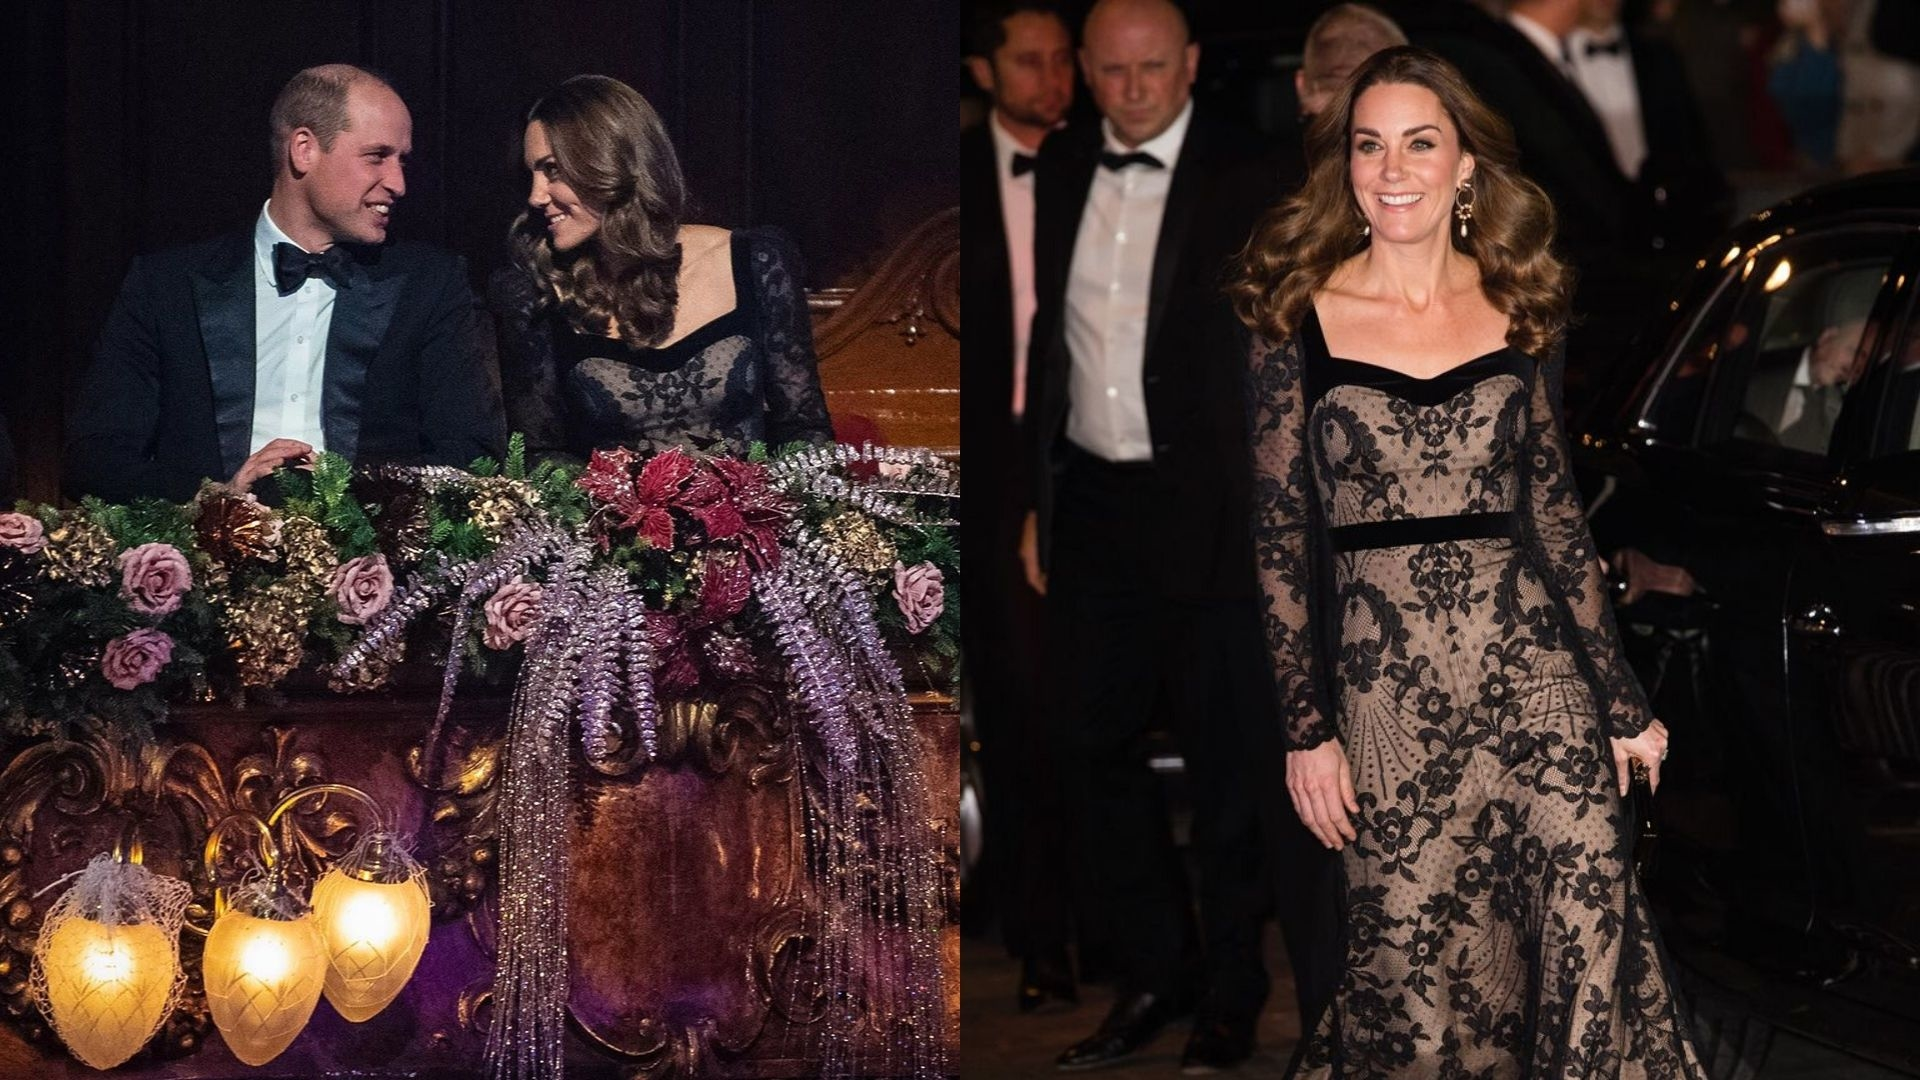 Kate Middleton Just Stole The Show Wearing Alexander McQueen